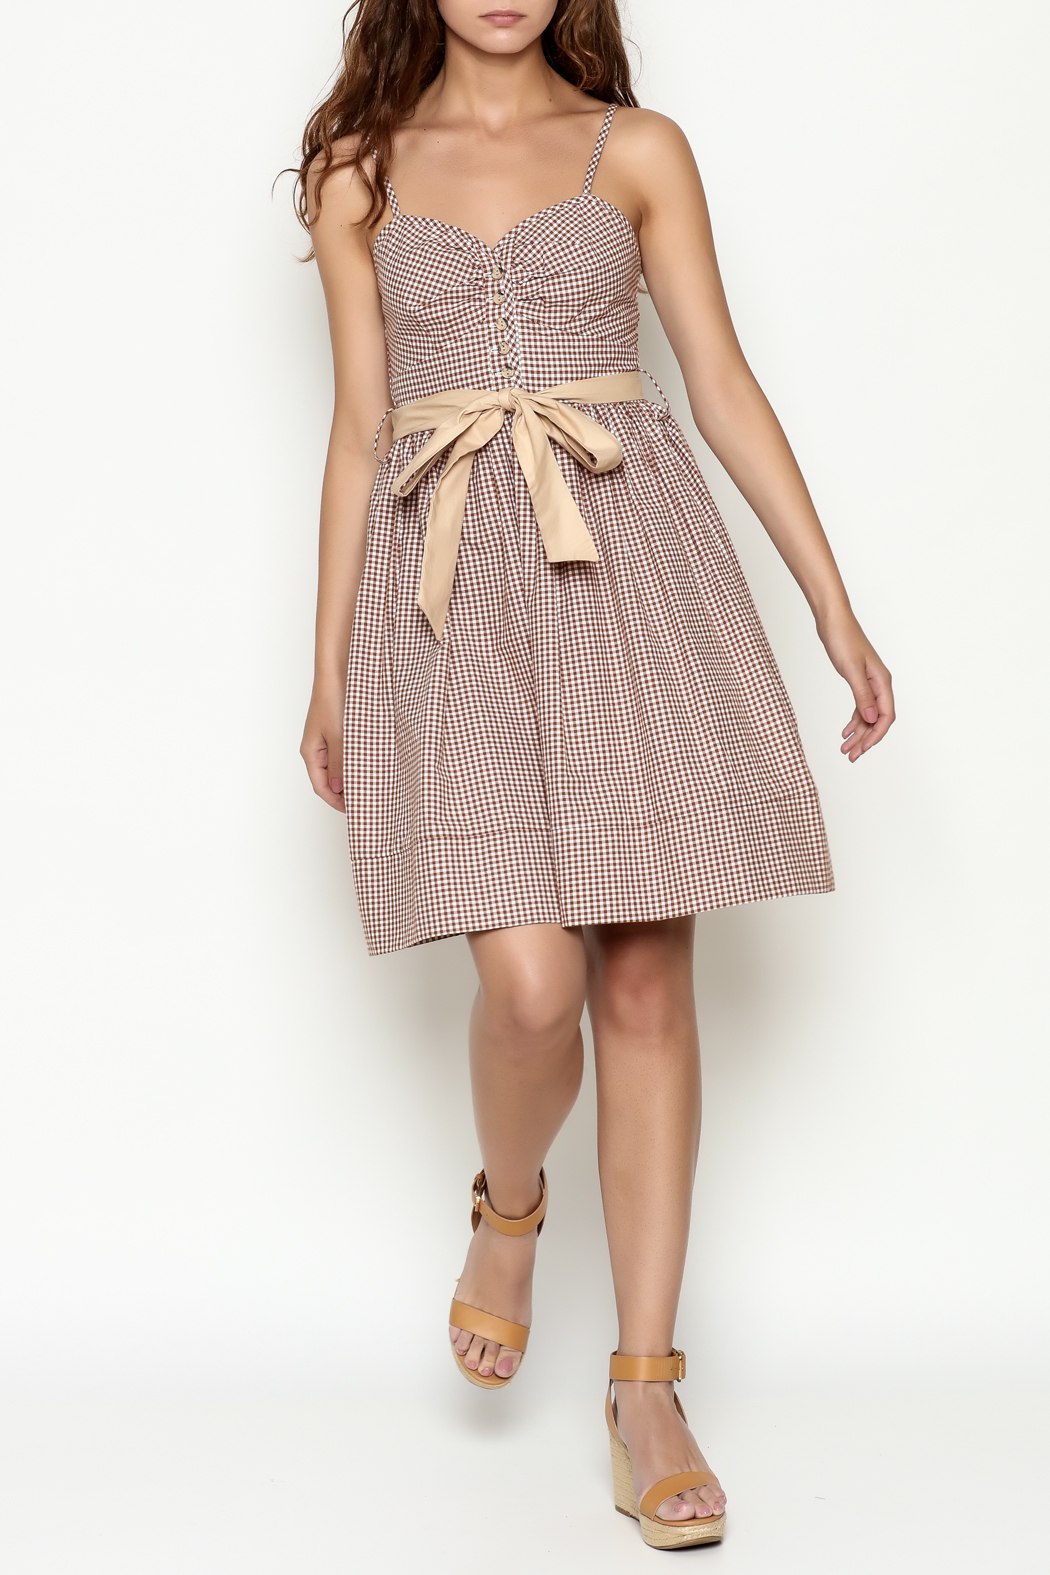 Roberta Oaks Gingham Print Dress - Side Cropped Image